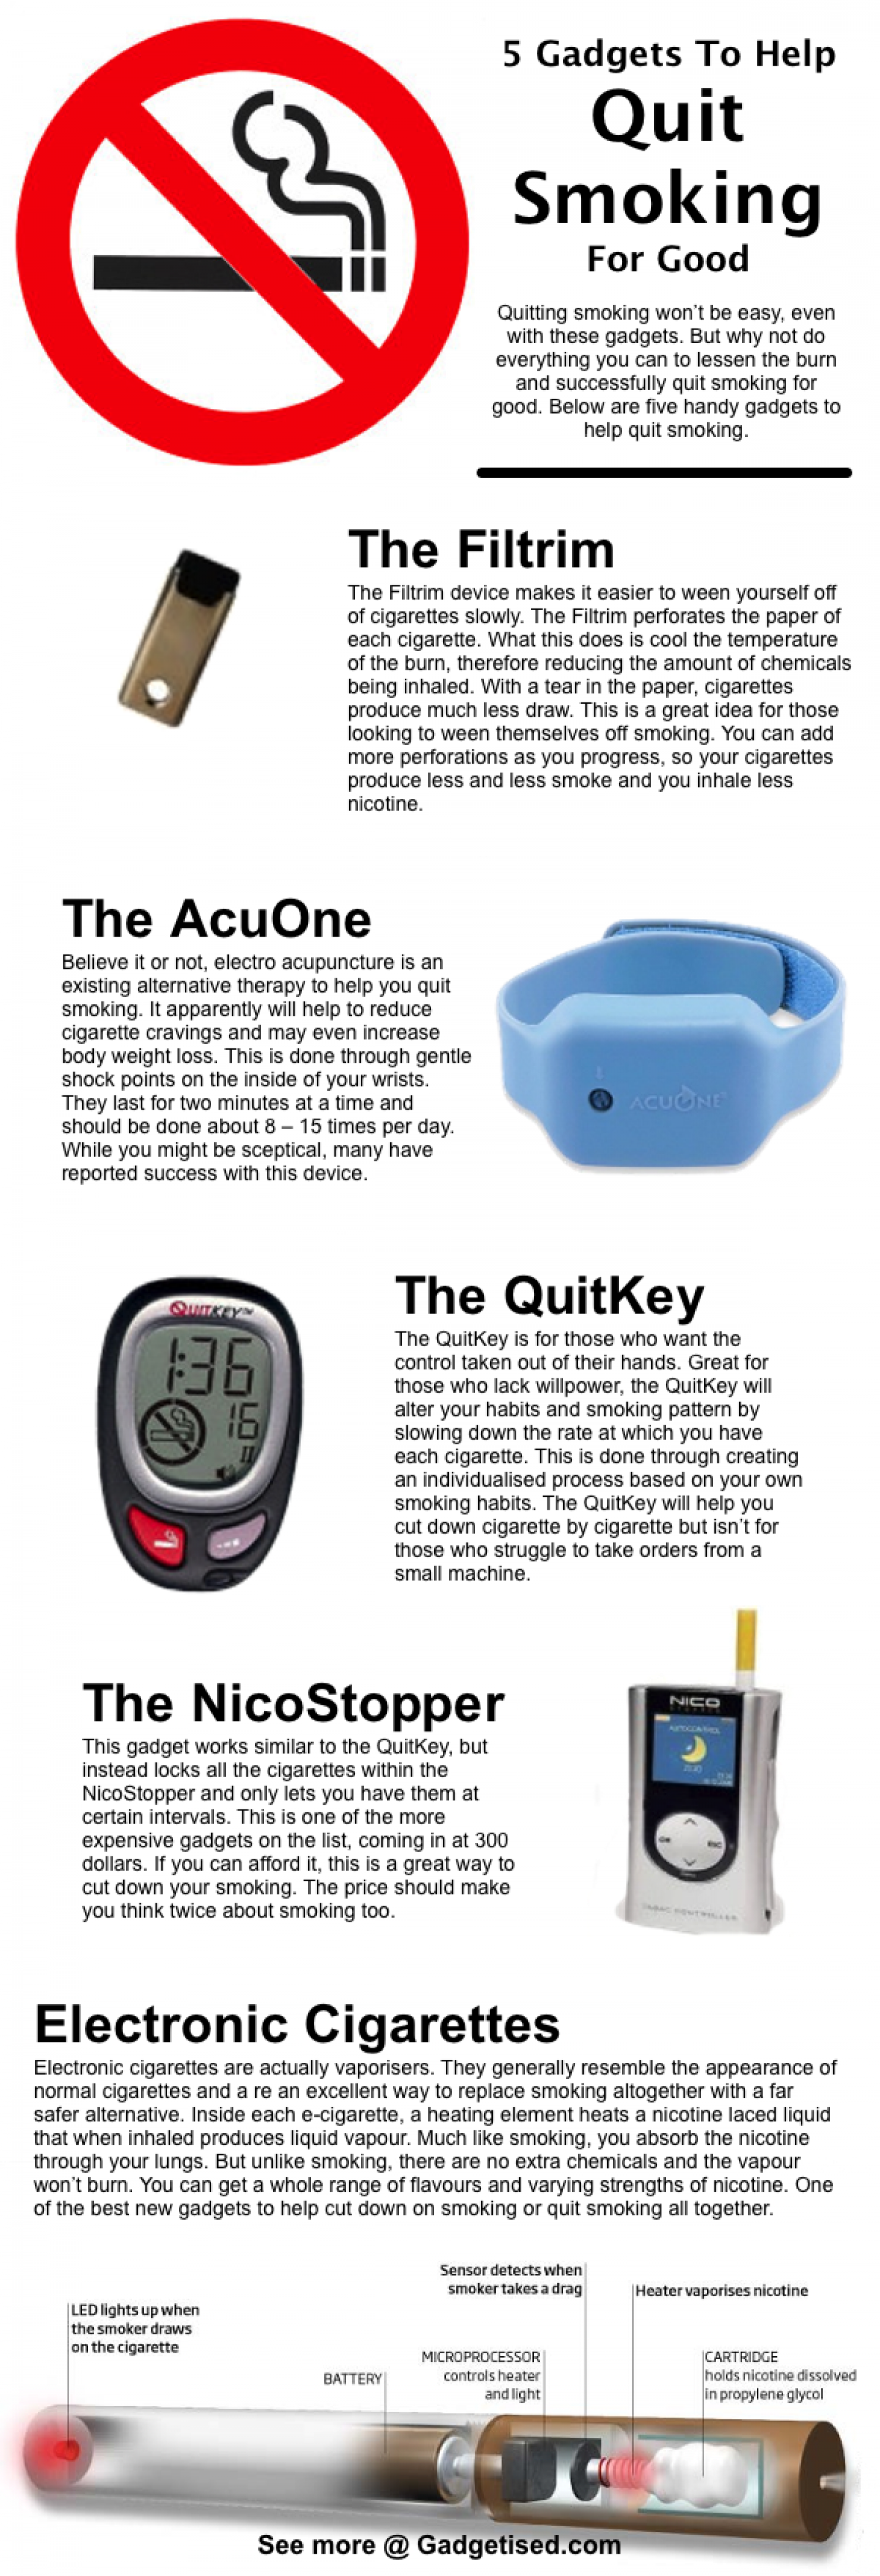 5 Gadgets To Help You Quit Smoking For Good Infographic